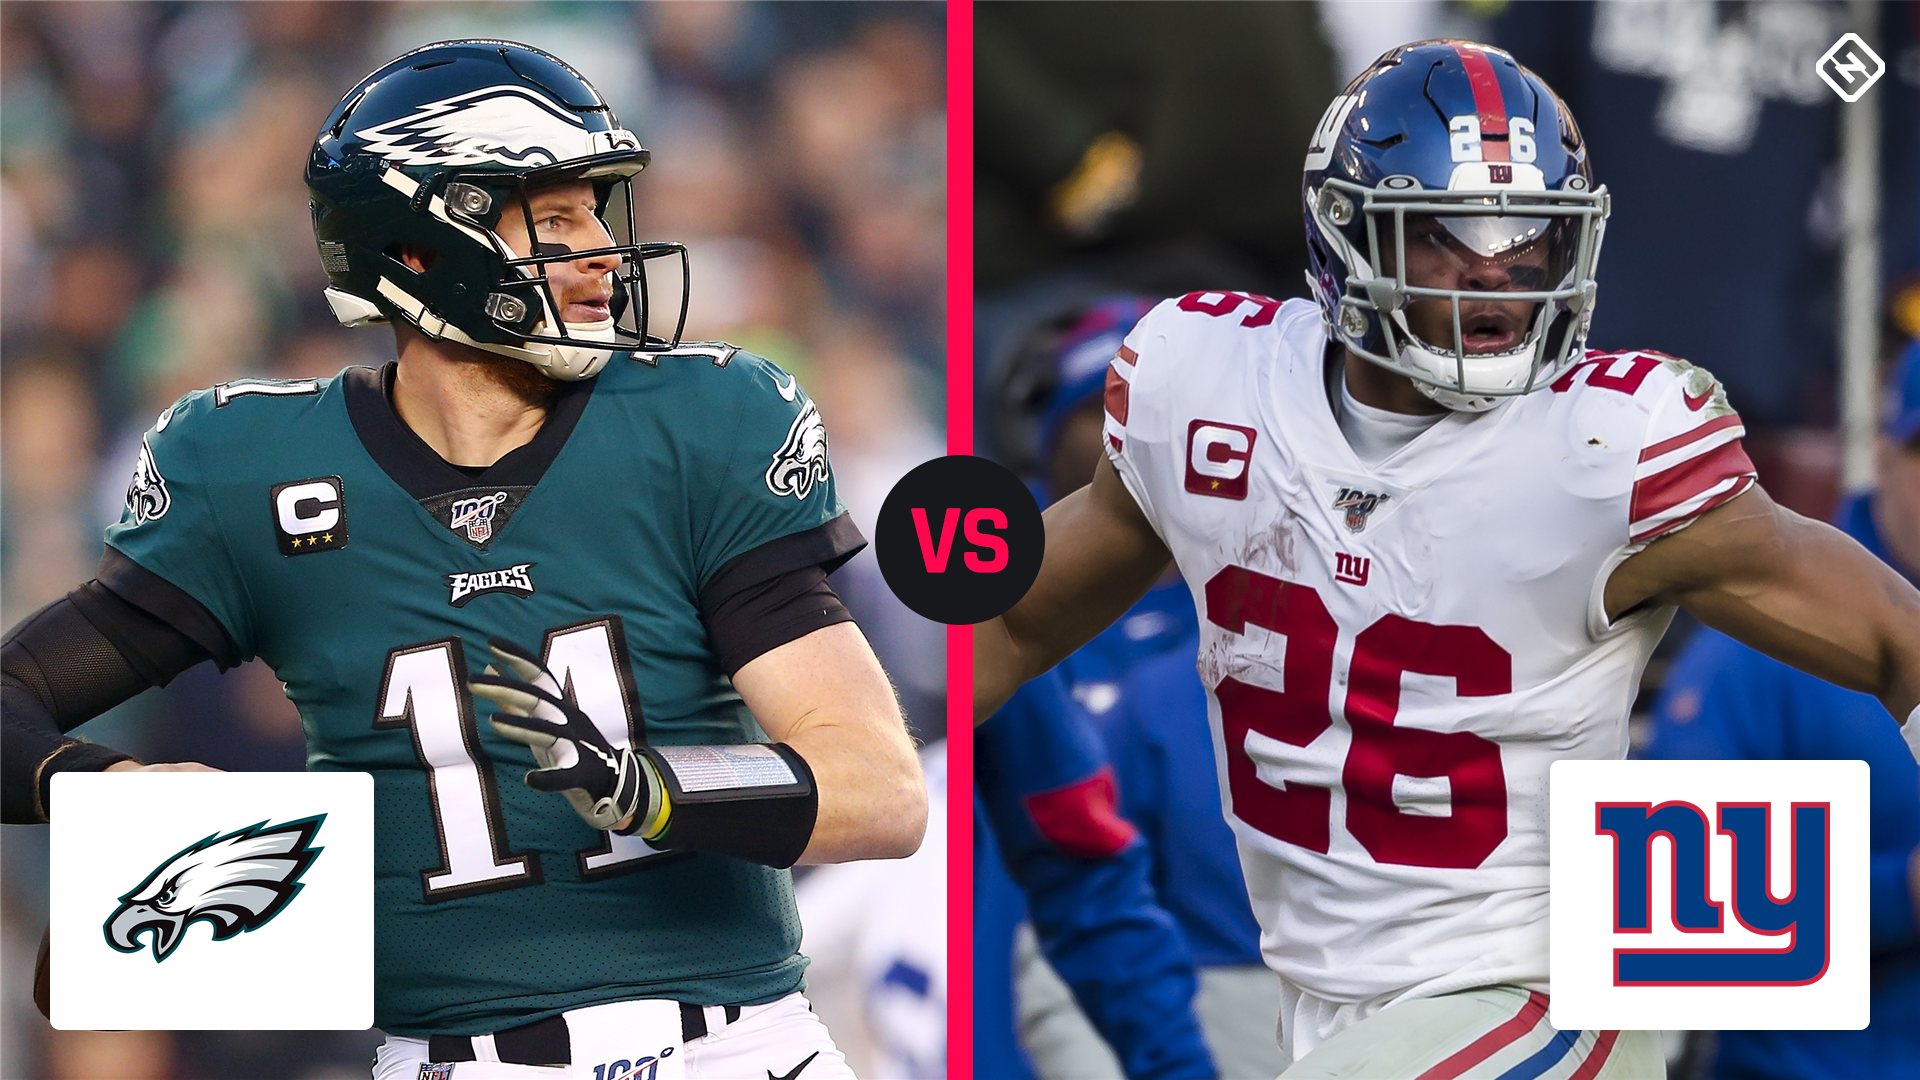 watch eagles vs giants game live free